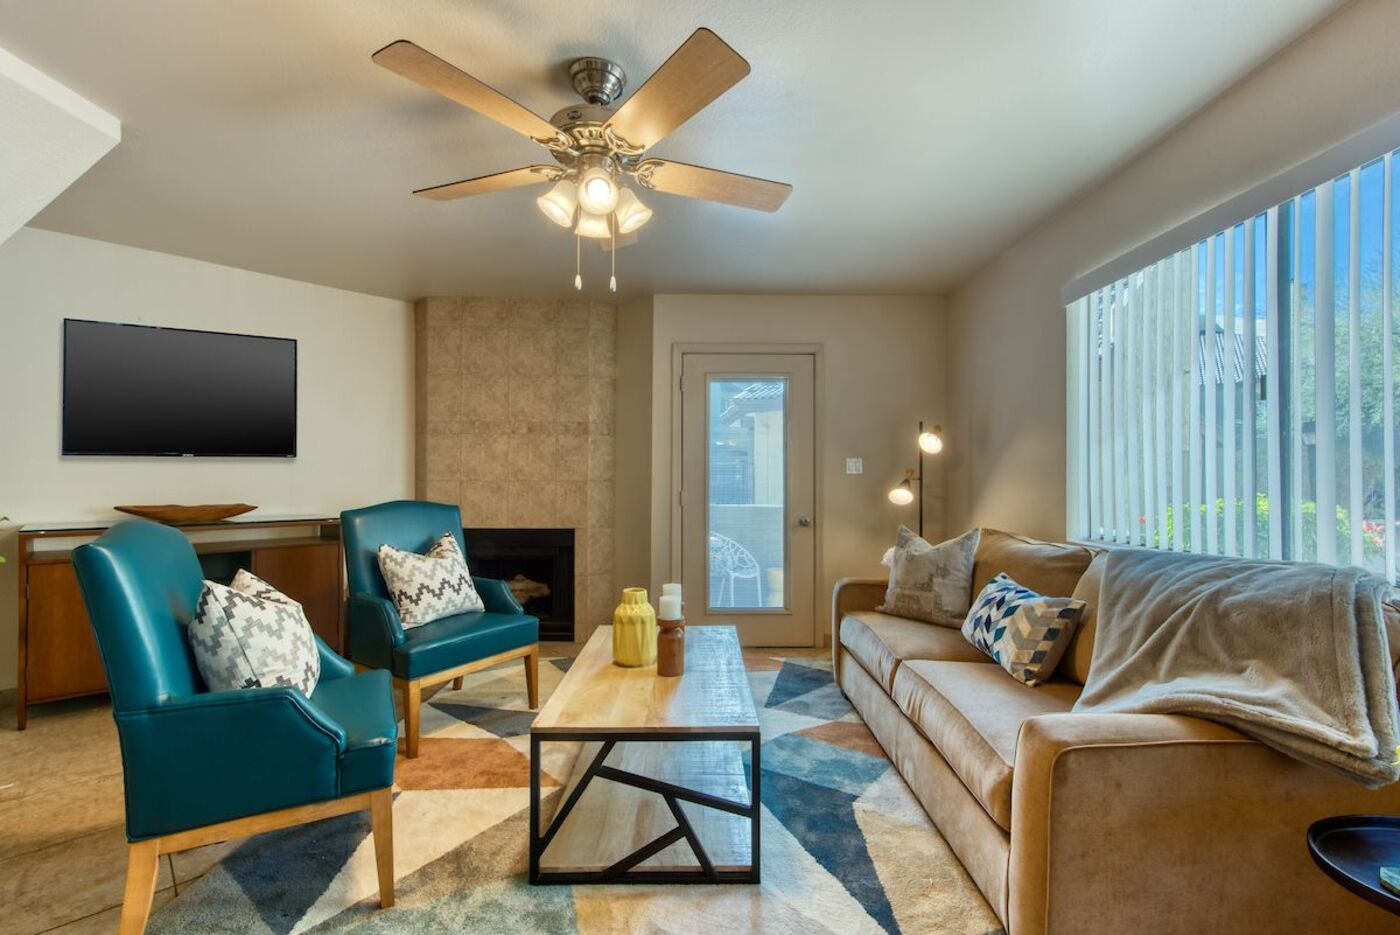 Tiled living room with ceiling fan, seating area, and view to kitchen and dining area.